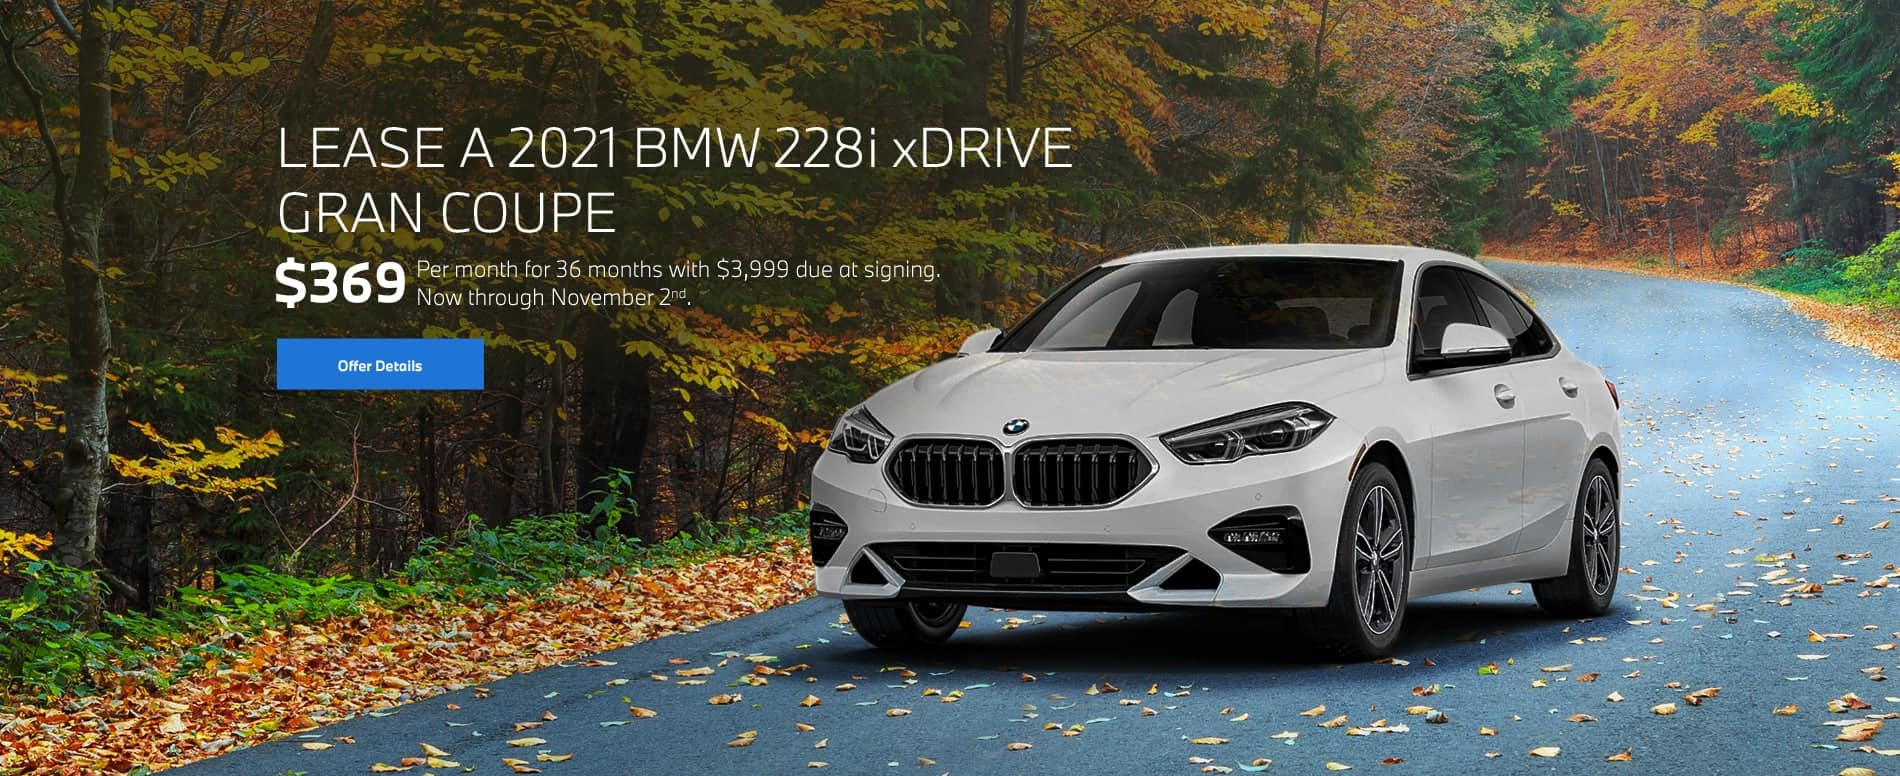 2021 BMW 228i xDrive Gran Coupe Lease